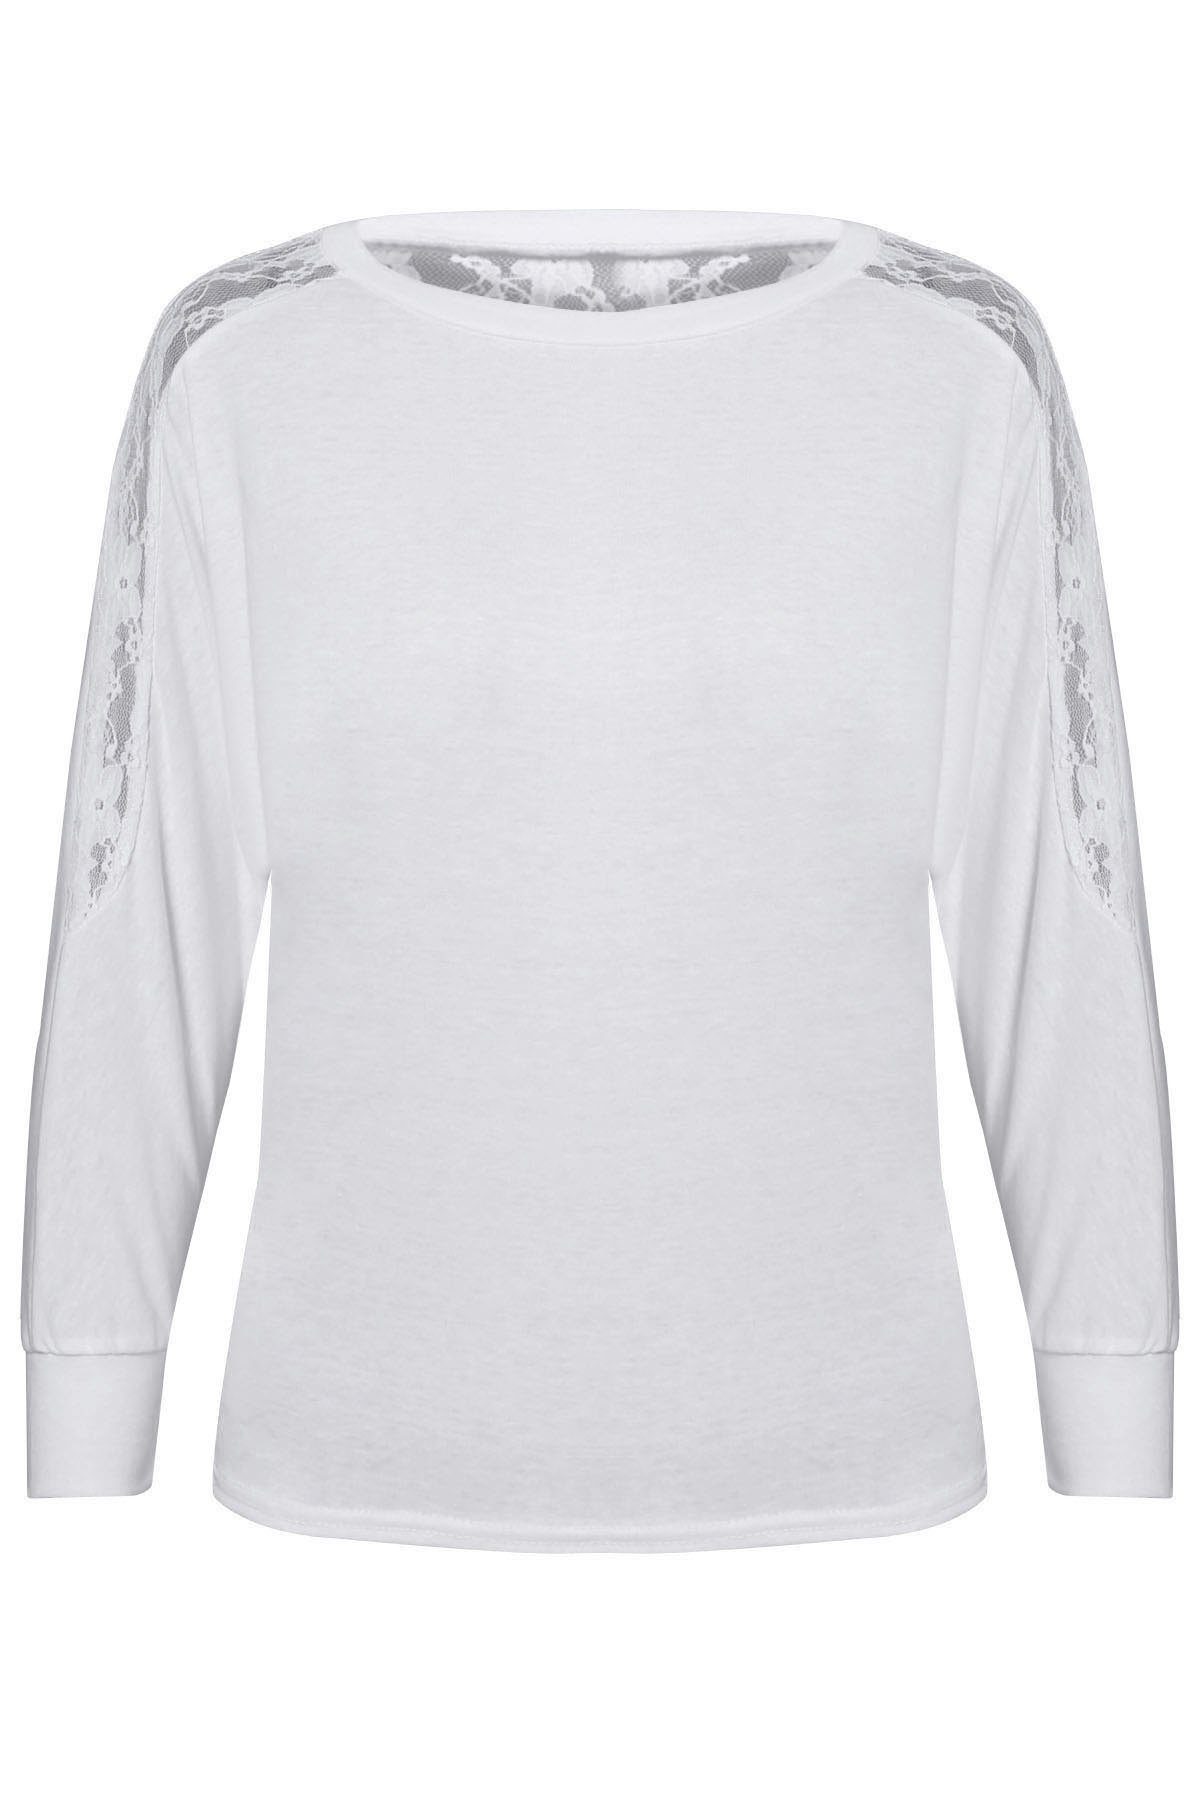 Women's Batwing Top Dolman Long Sleeve Lace Loose T Shirt - WHITE ONE SIZE